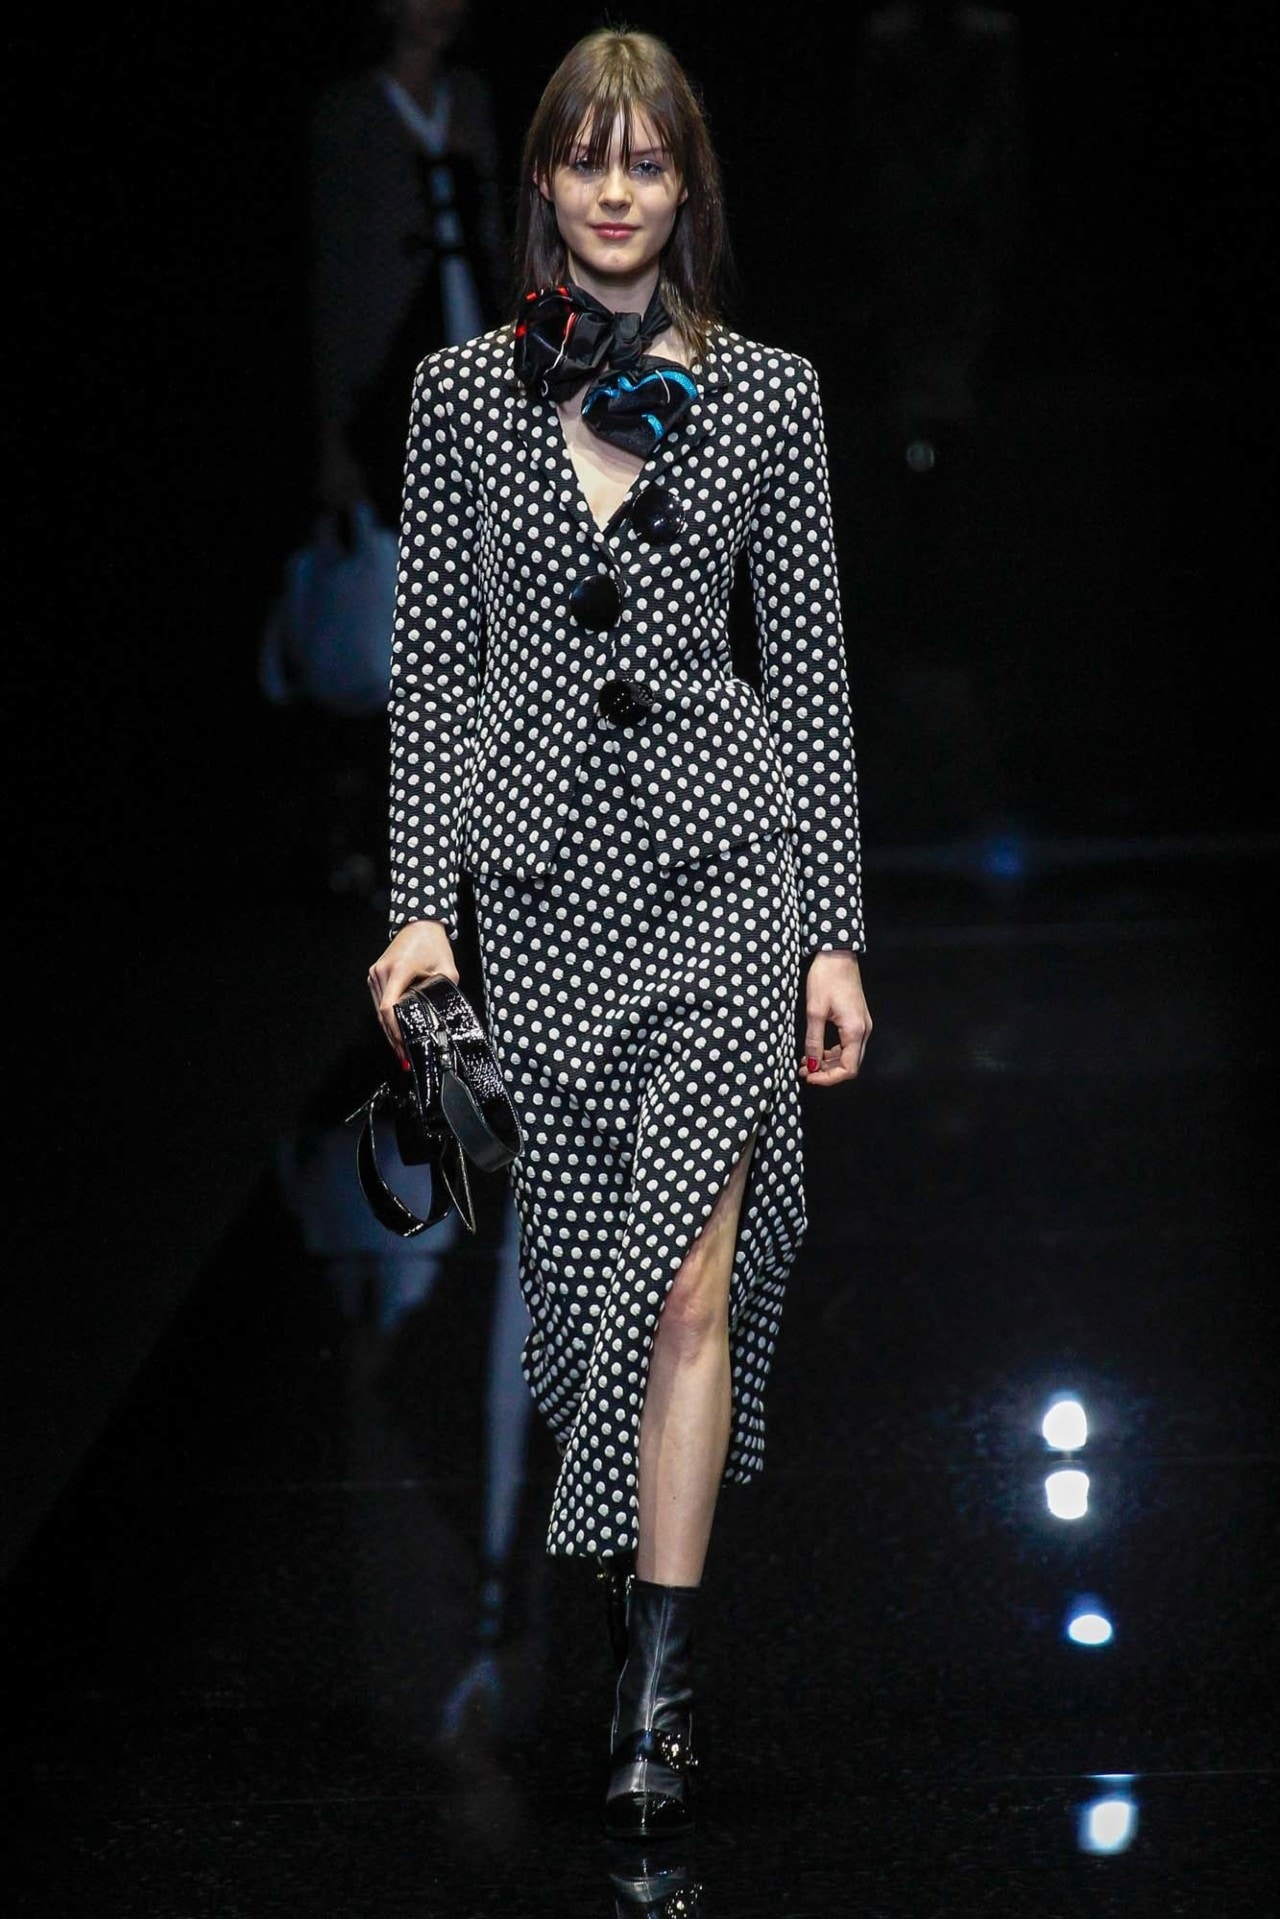 Emporio Armani ready-to-wear autumn/winter '17/'18